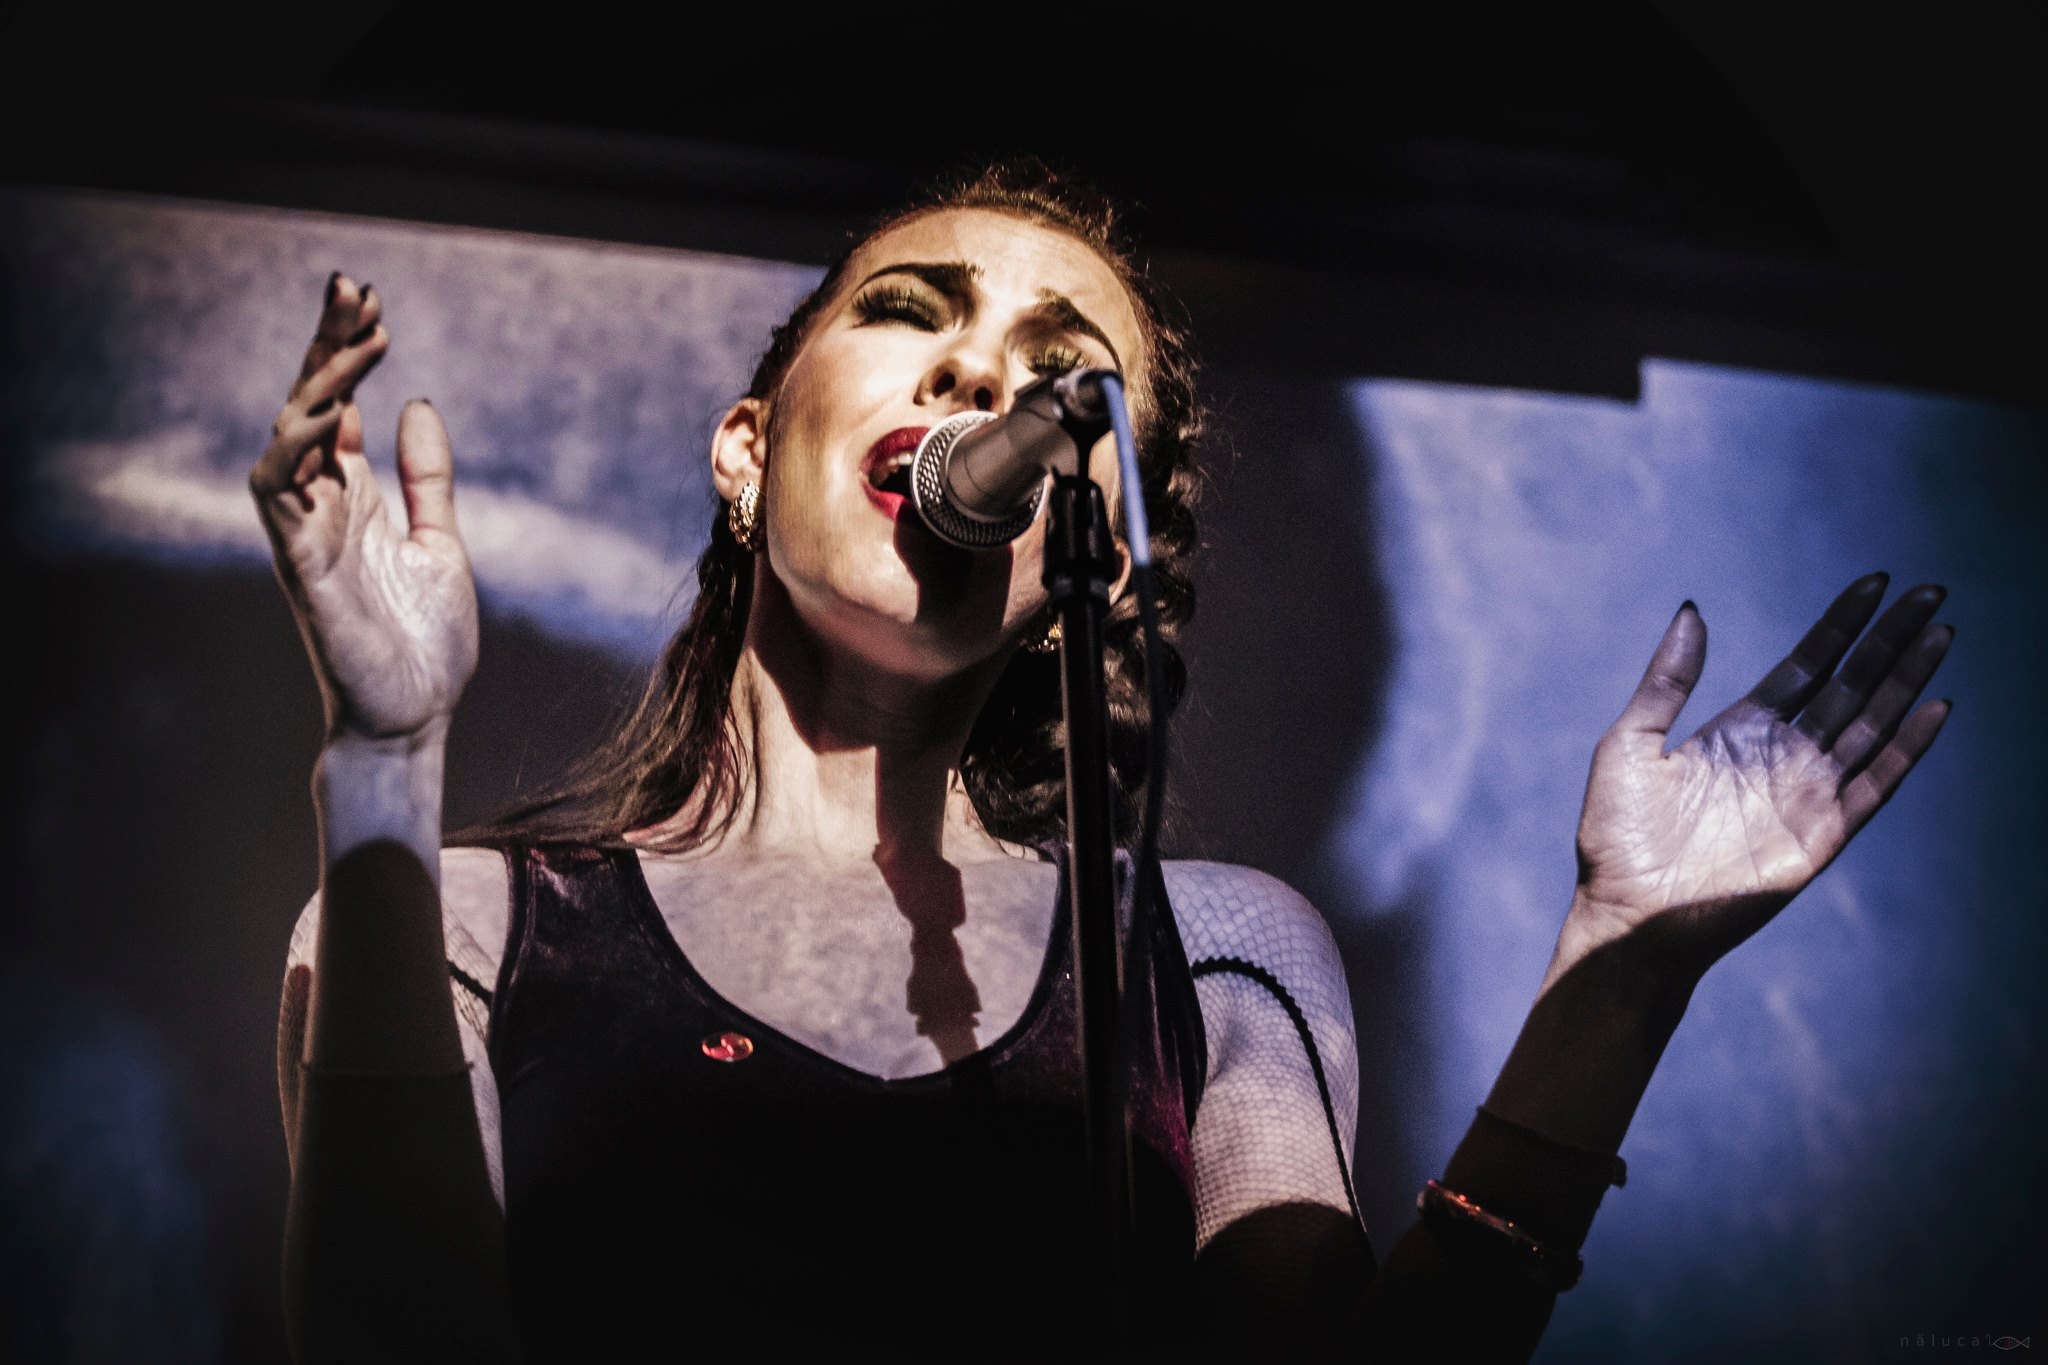 chrysta bell at control by naluca